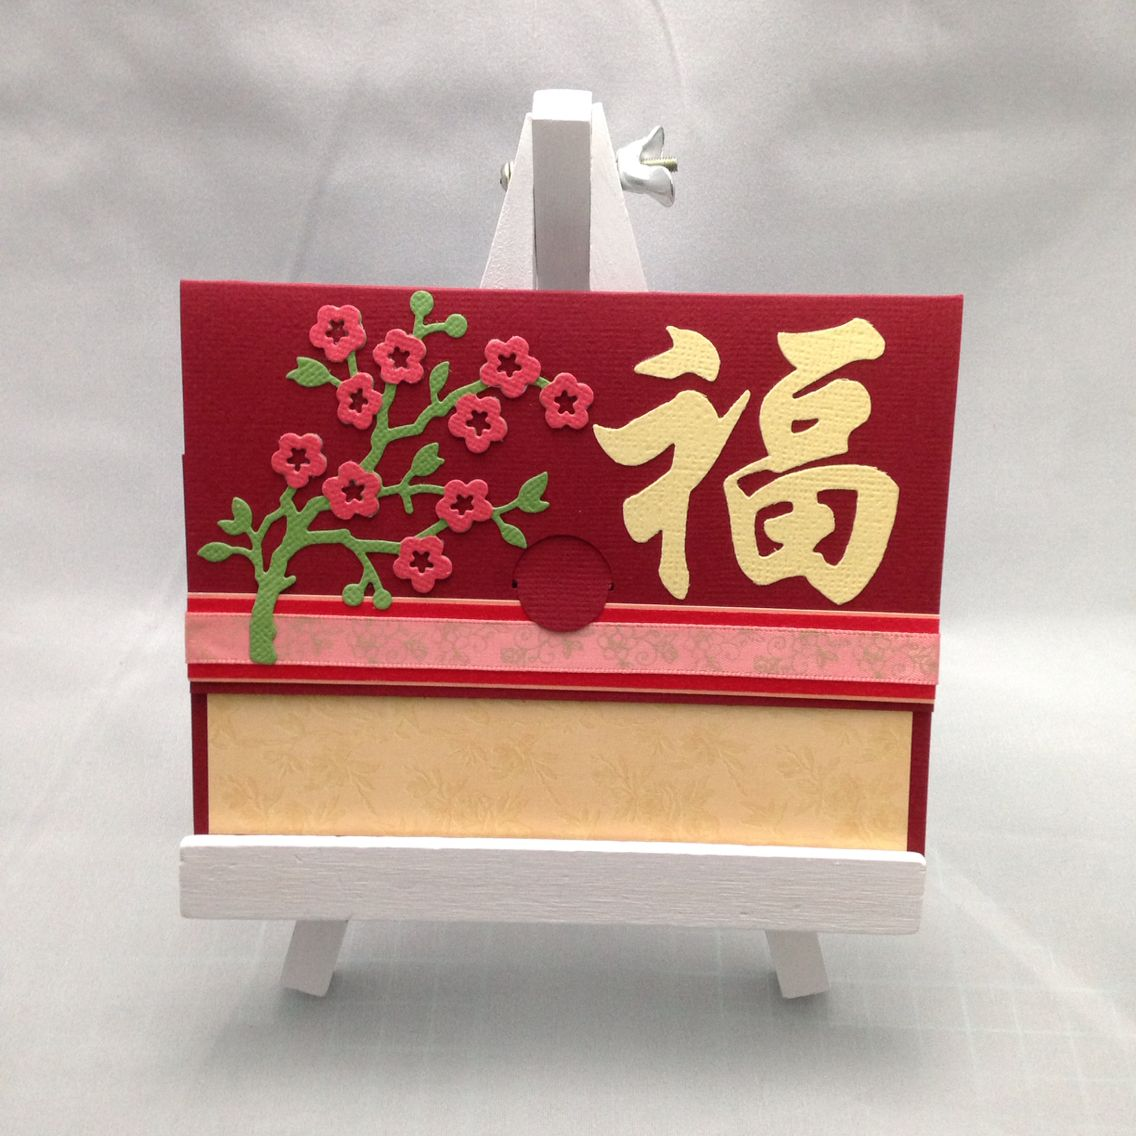 Chinese new year greeting card sy creations pinterest asian chinese new year greeting card kristyandbryce Images